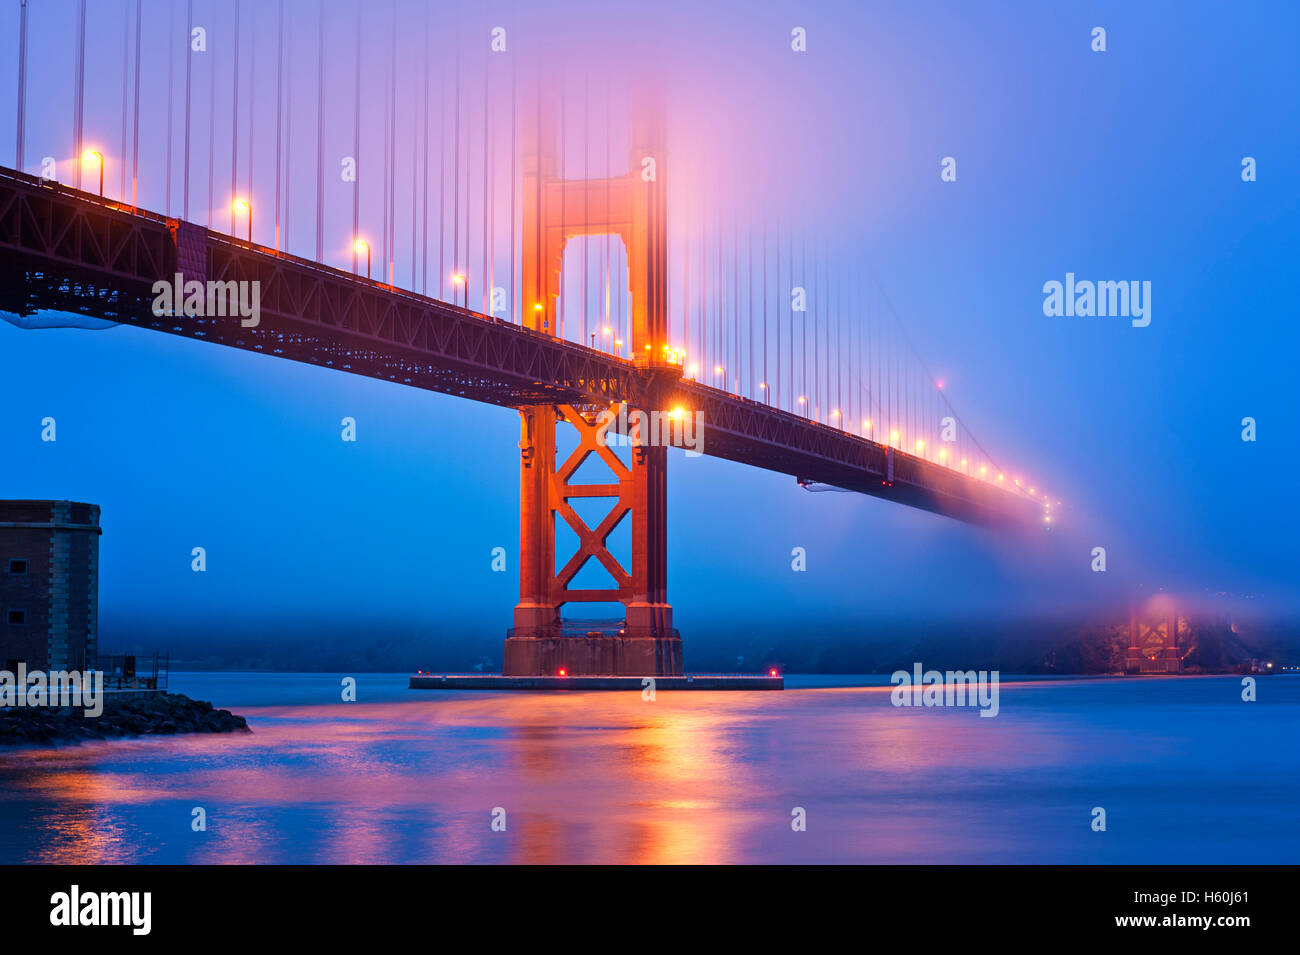 Golden Gate Bridge San Francisco at dusk - Stock Image